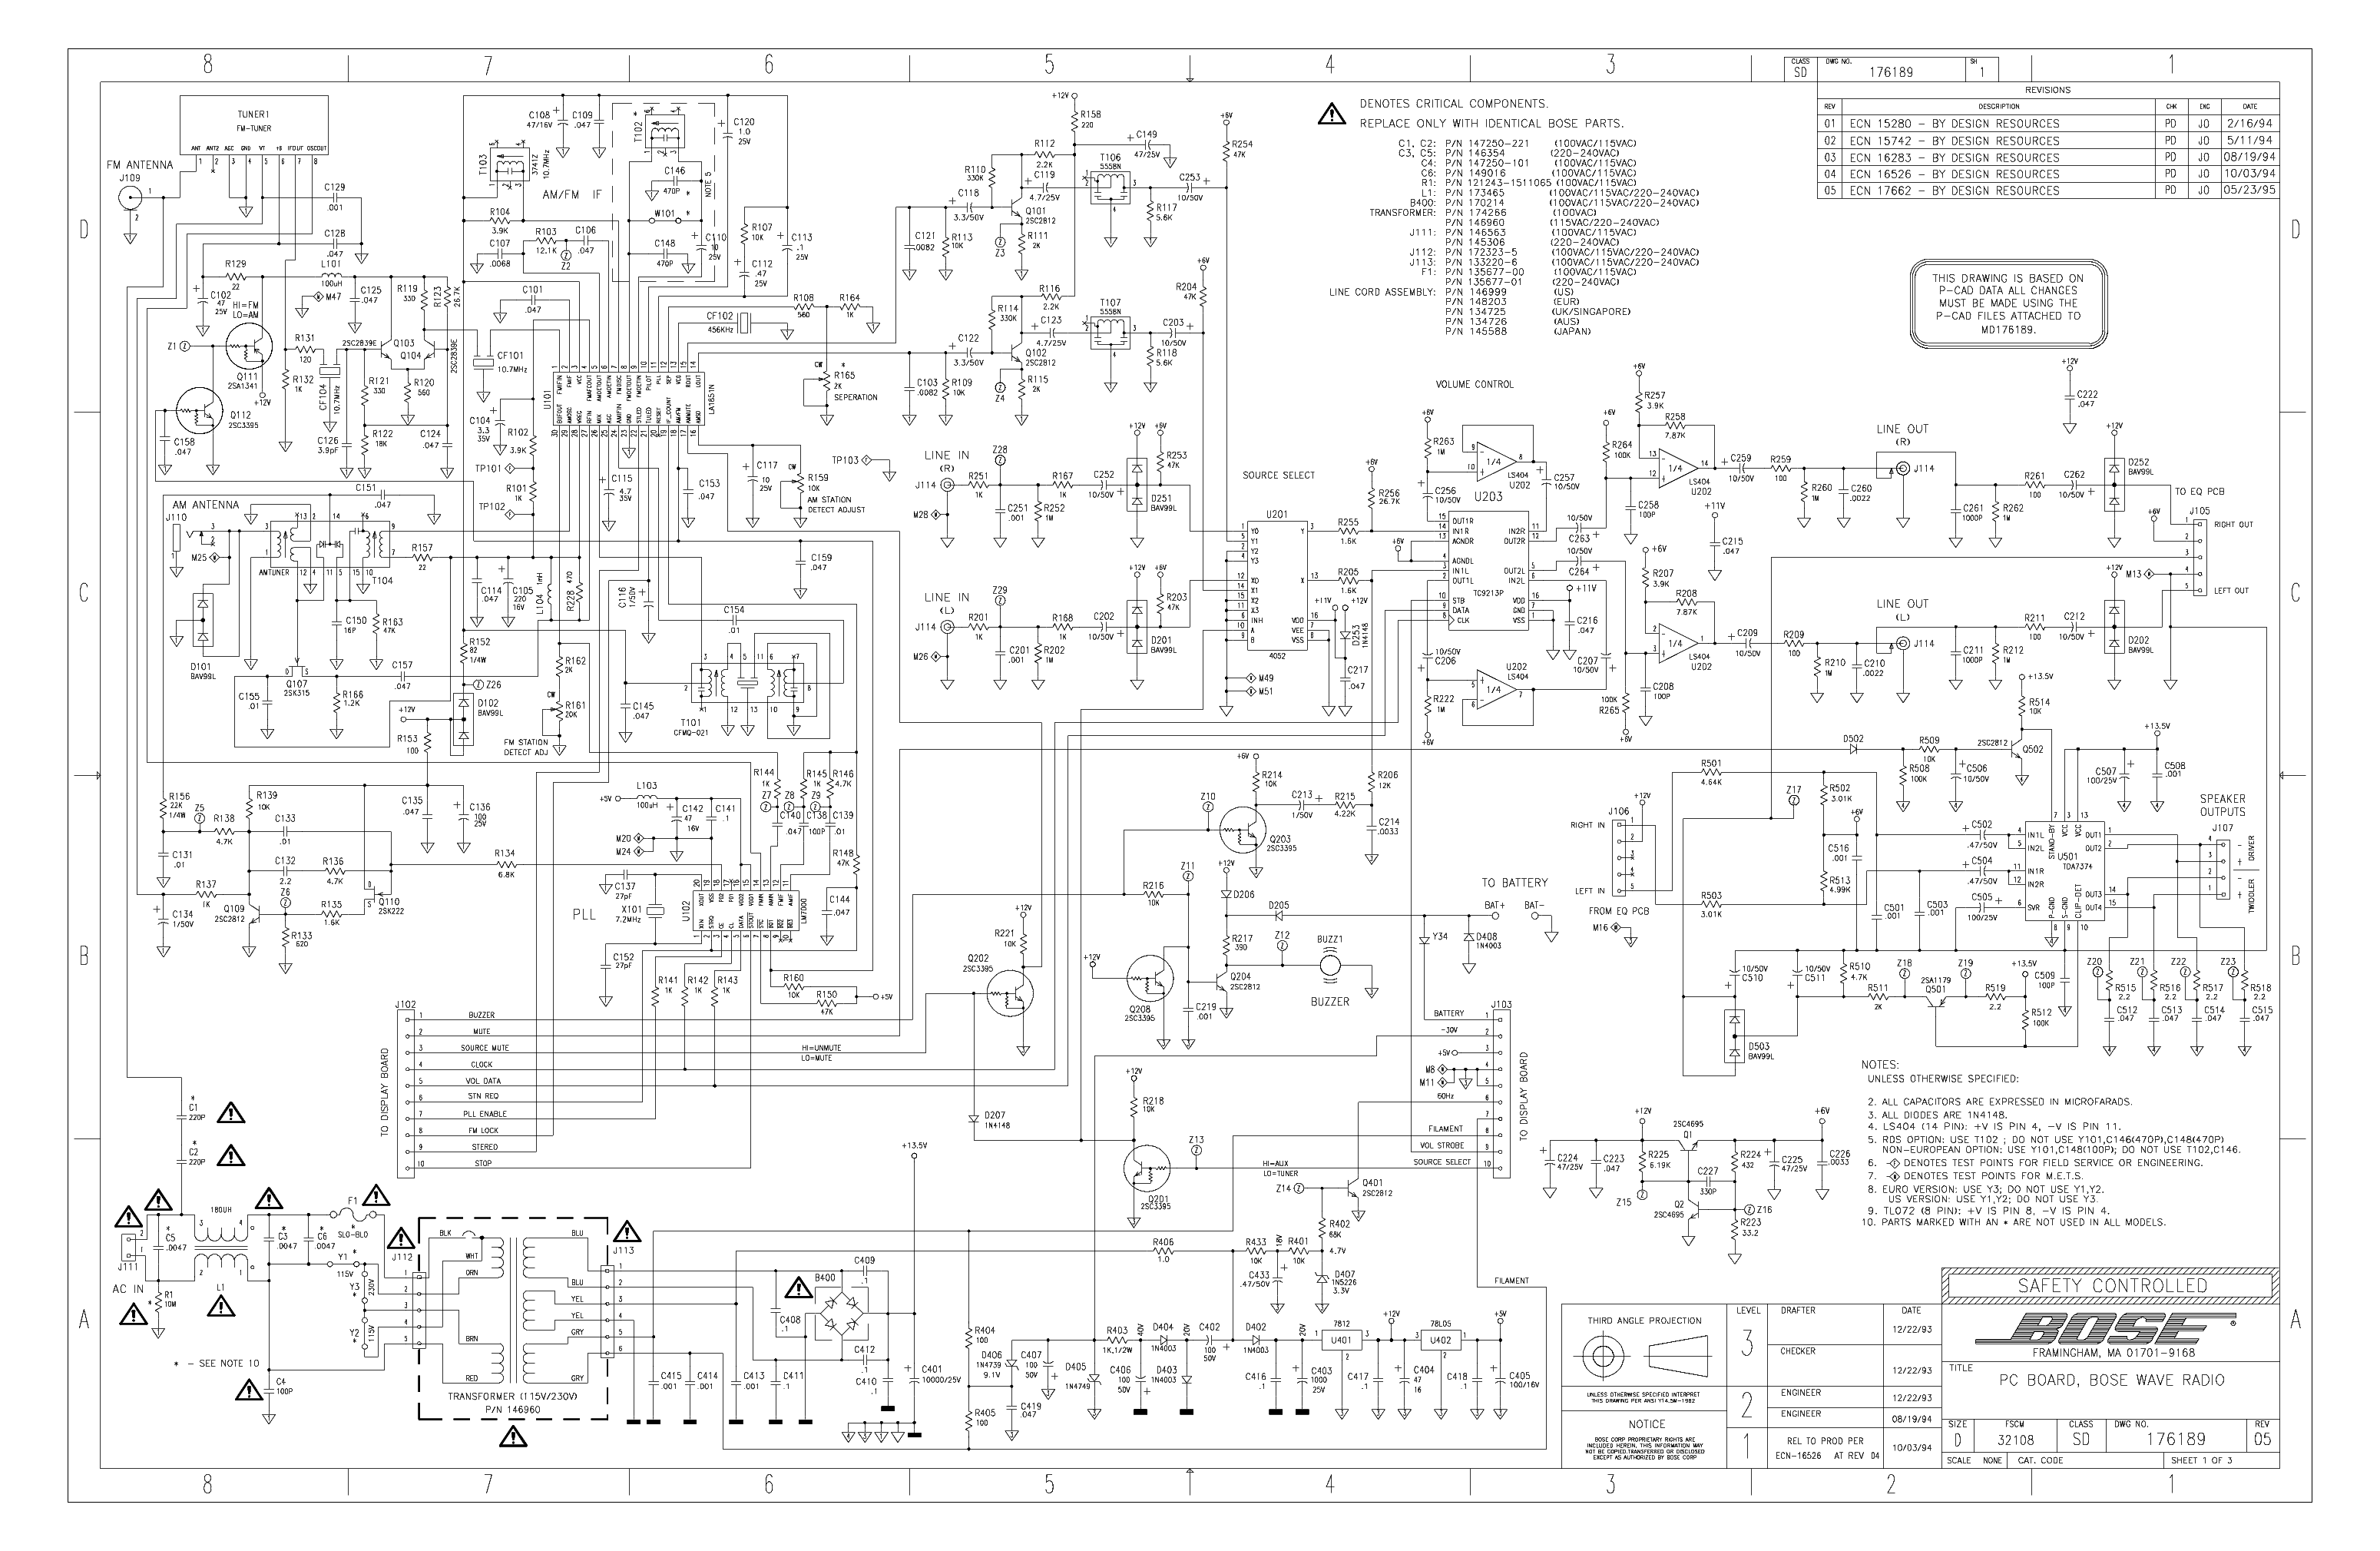 Pa System Wiring Schematic